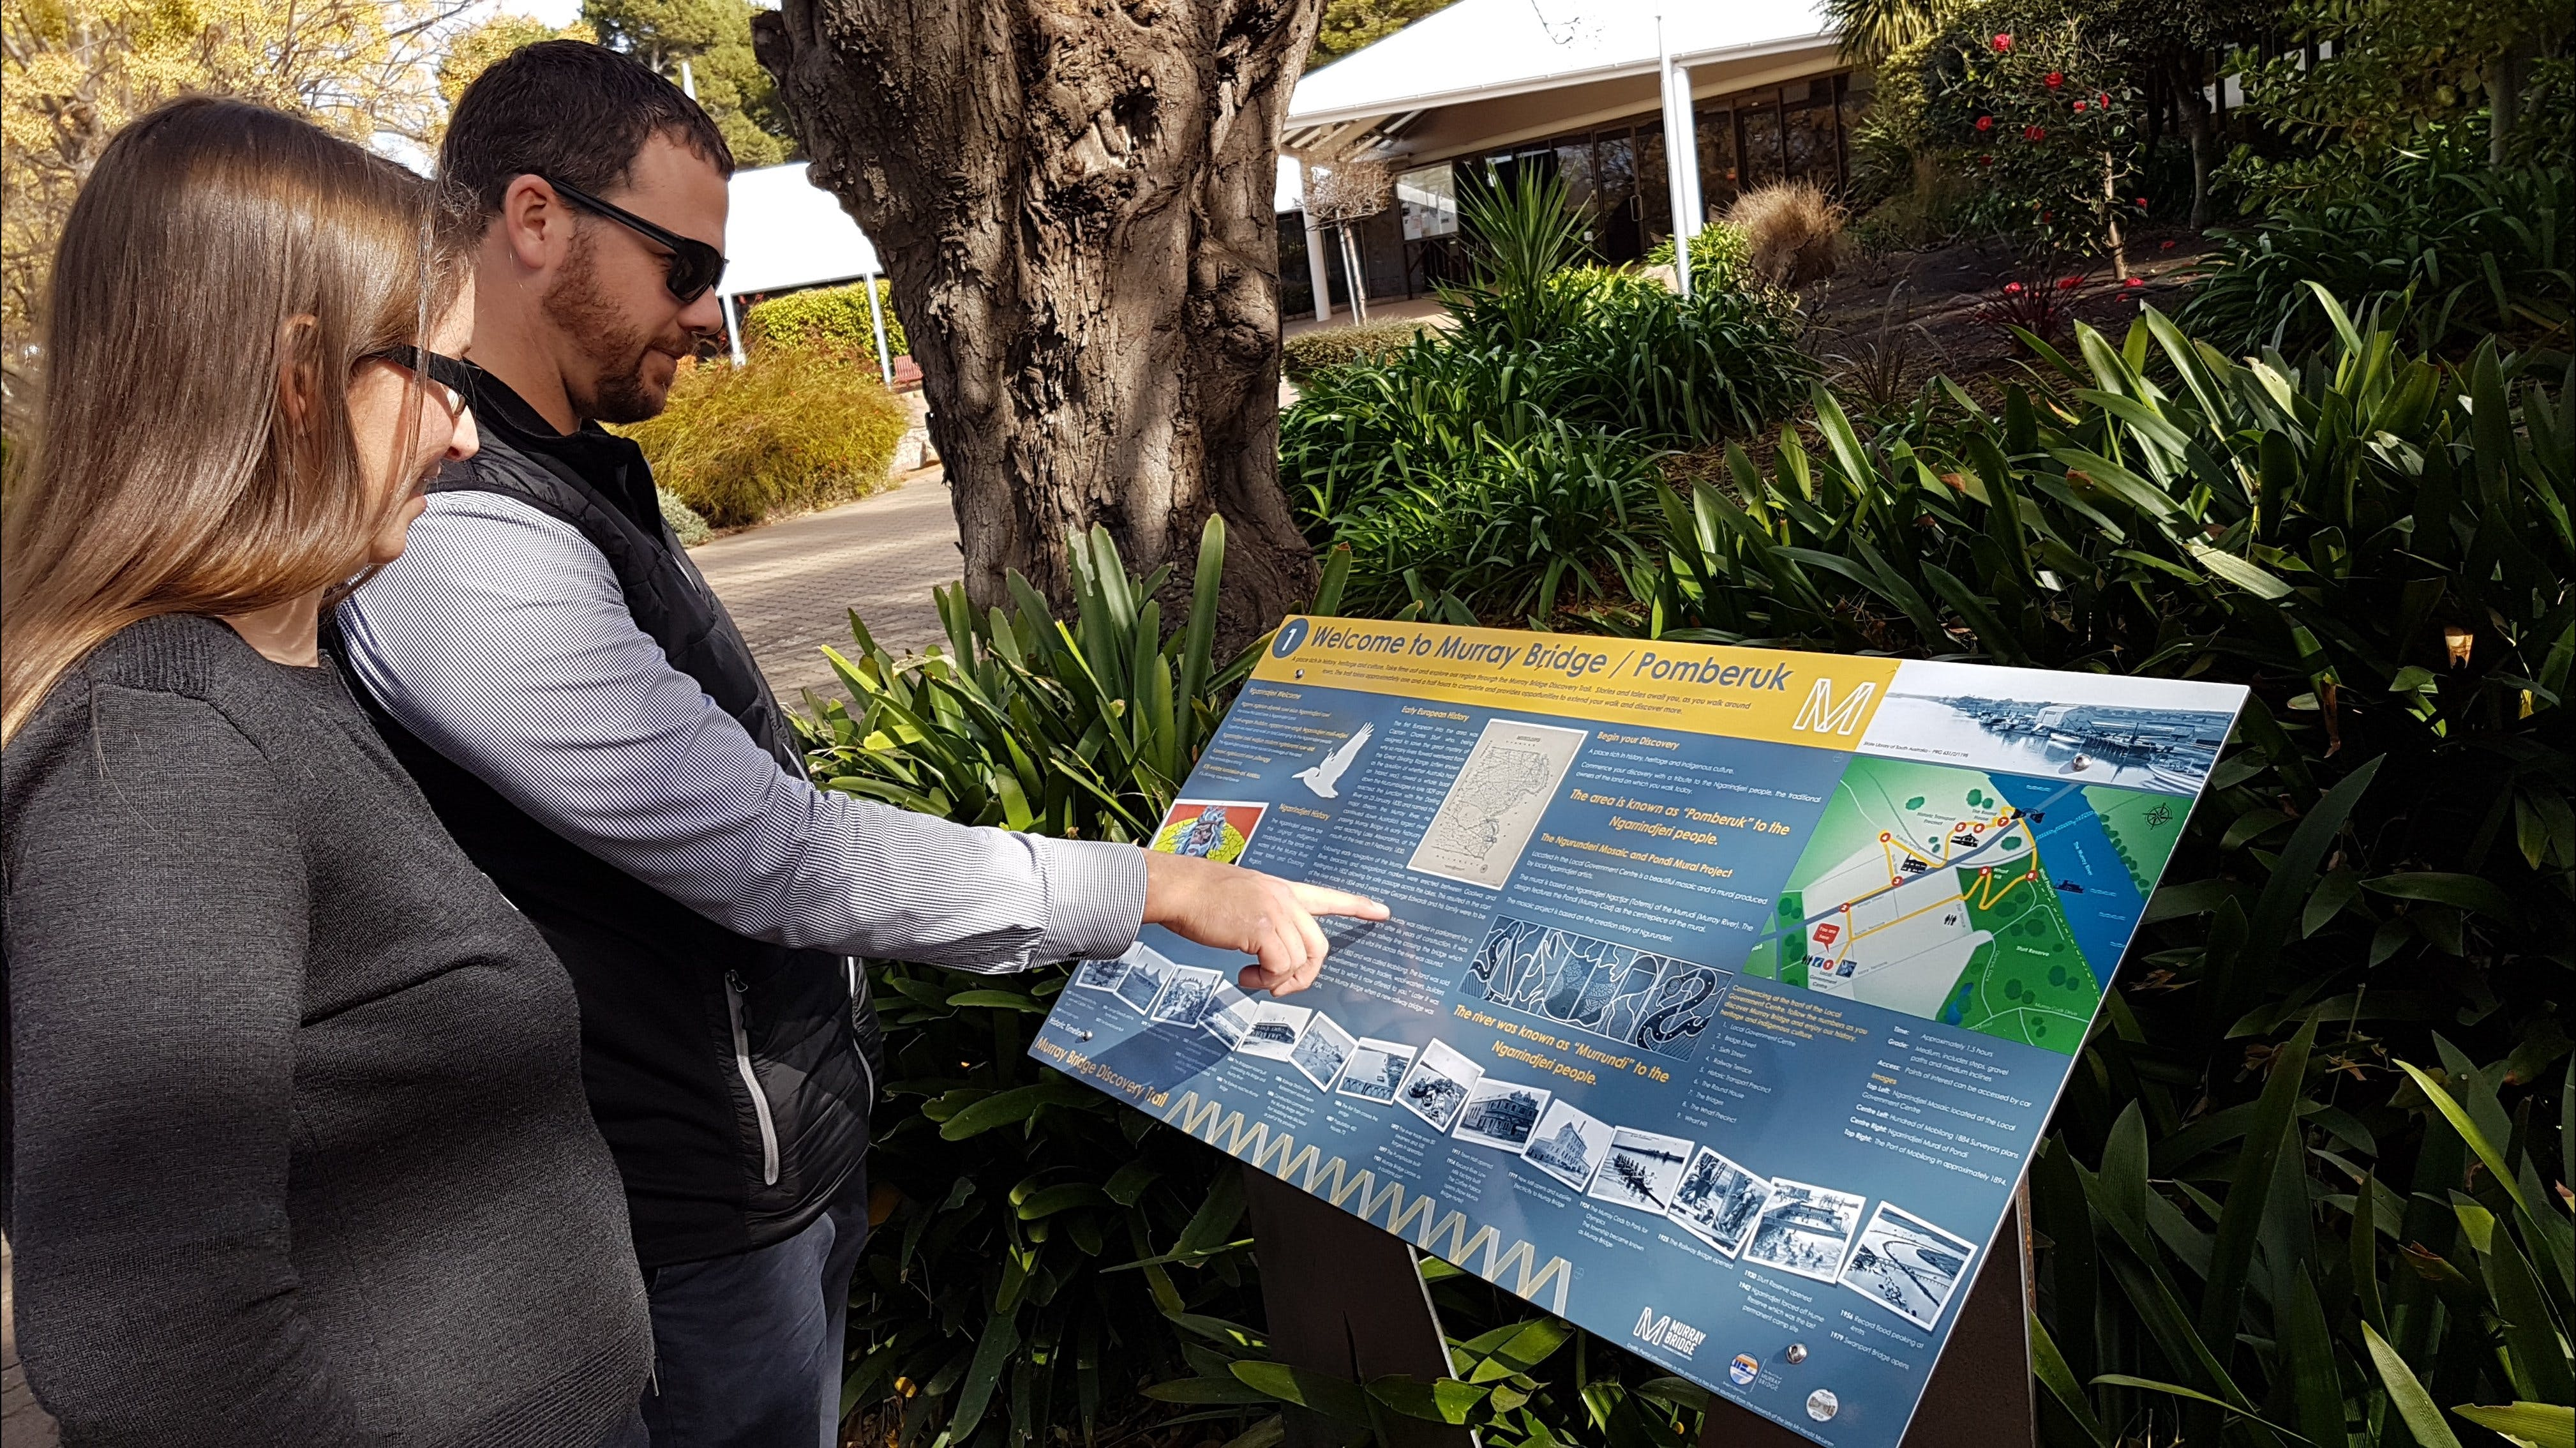 The Murray Bridge Discovery Trail - Tourism Cairns